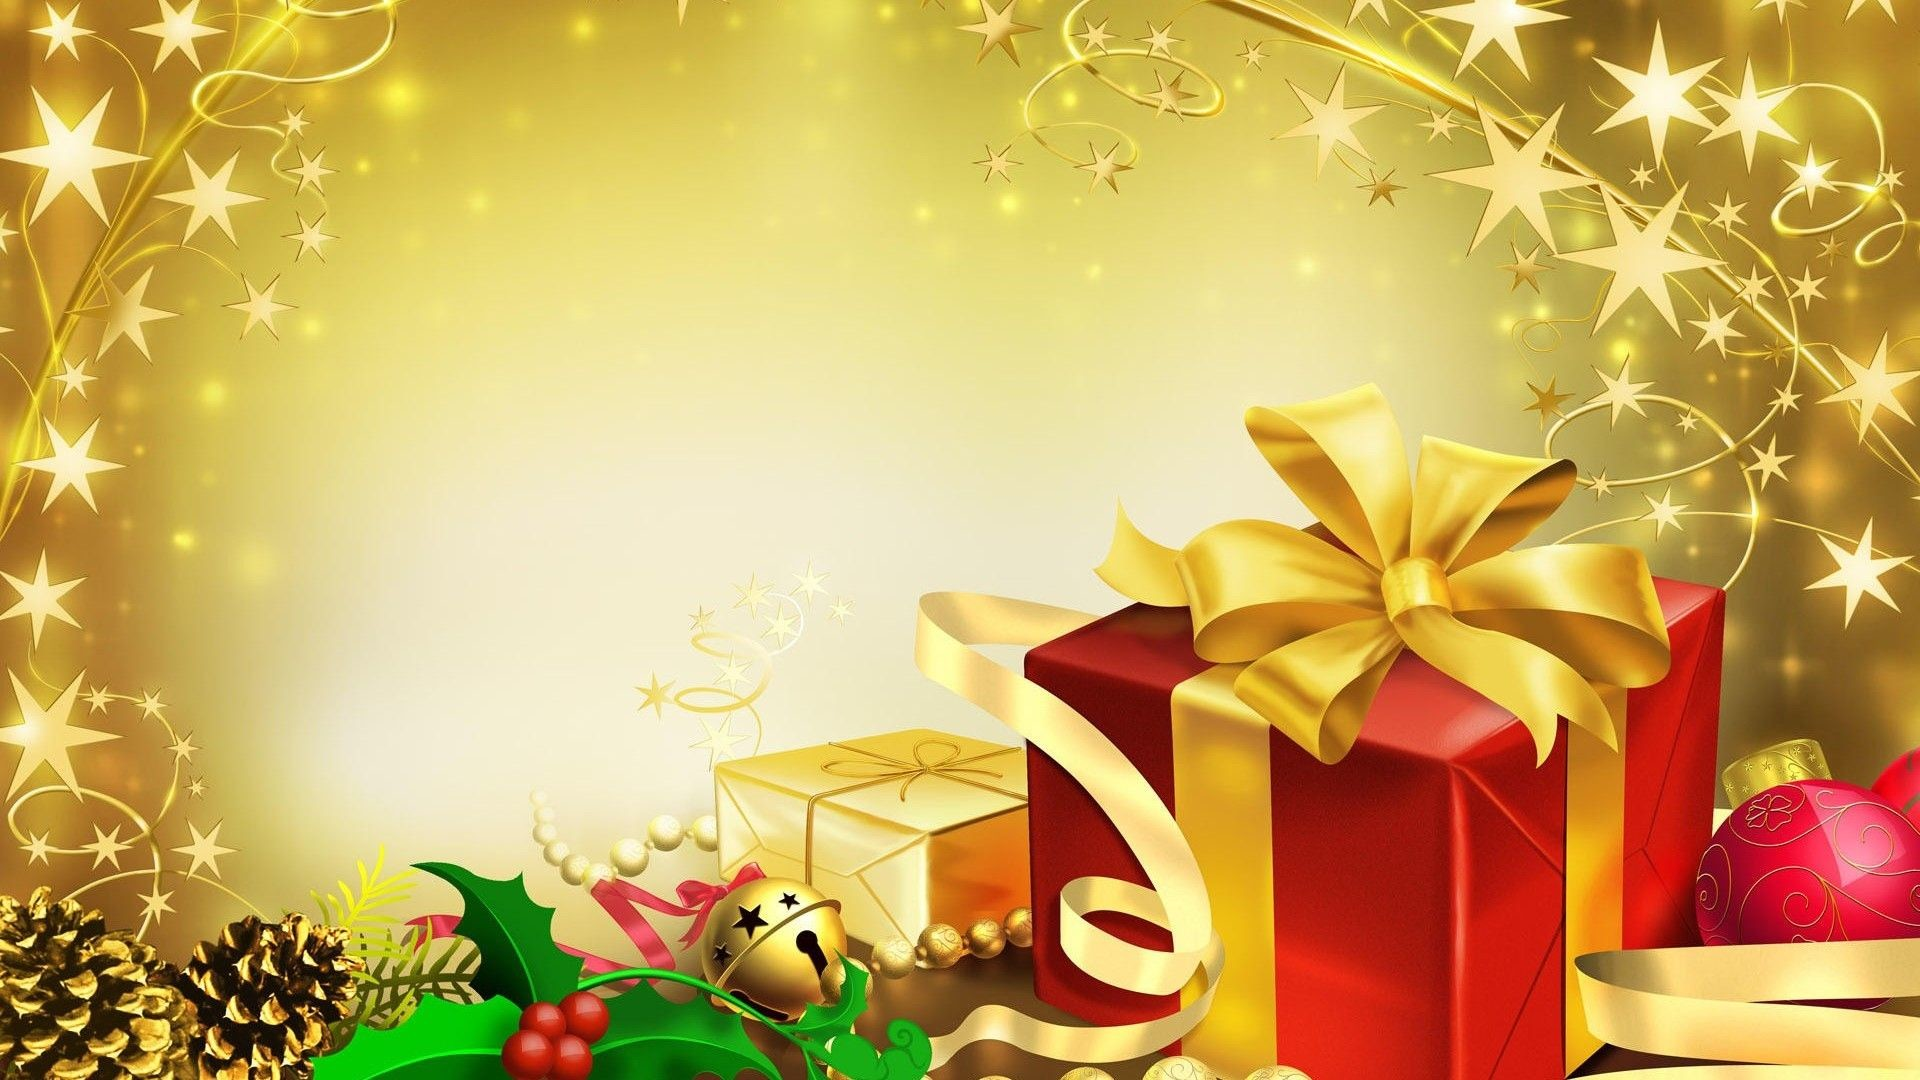 1920x1080 Christmas Present Wallpapers by Oscar Field #5